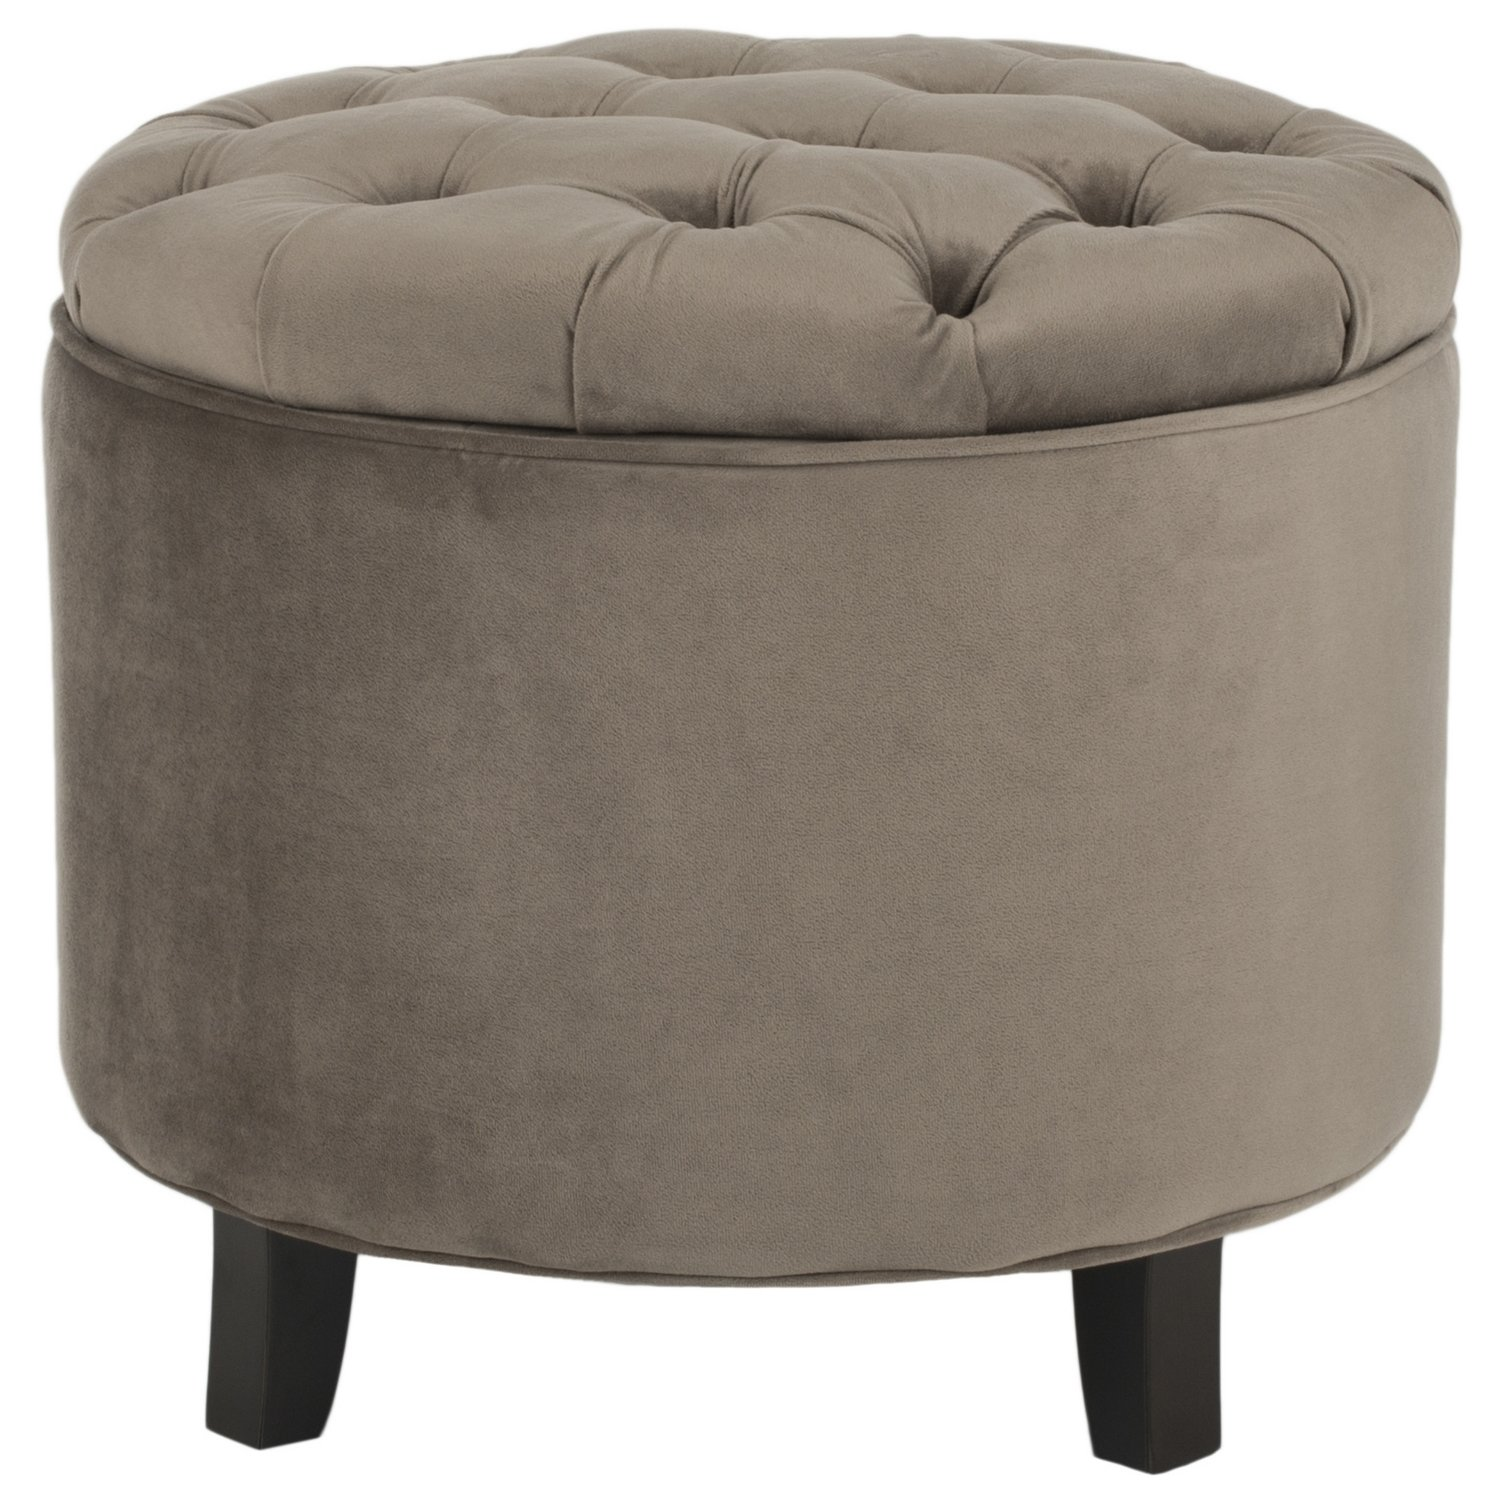 amazoncom safavieh hudson collection amelia tufted storage  - amazoncom safavieh hudson collection amelia tufted storage ottomanmushroom taupe kitchen  dining